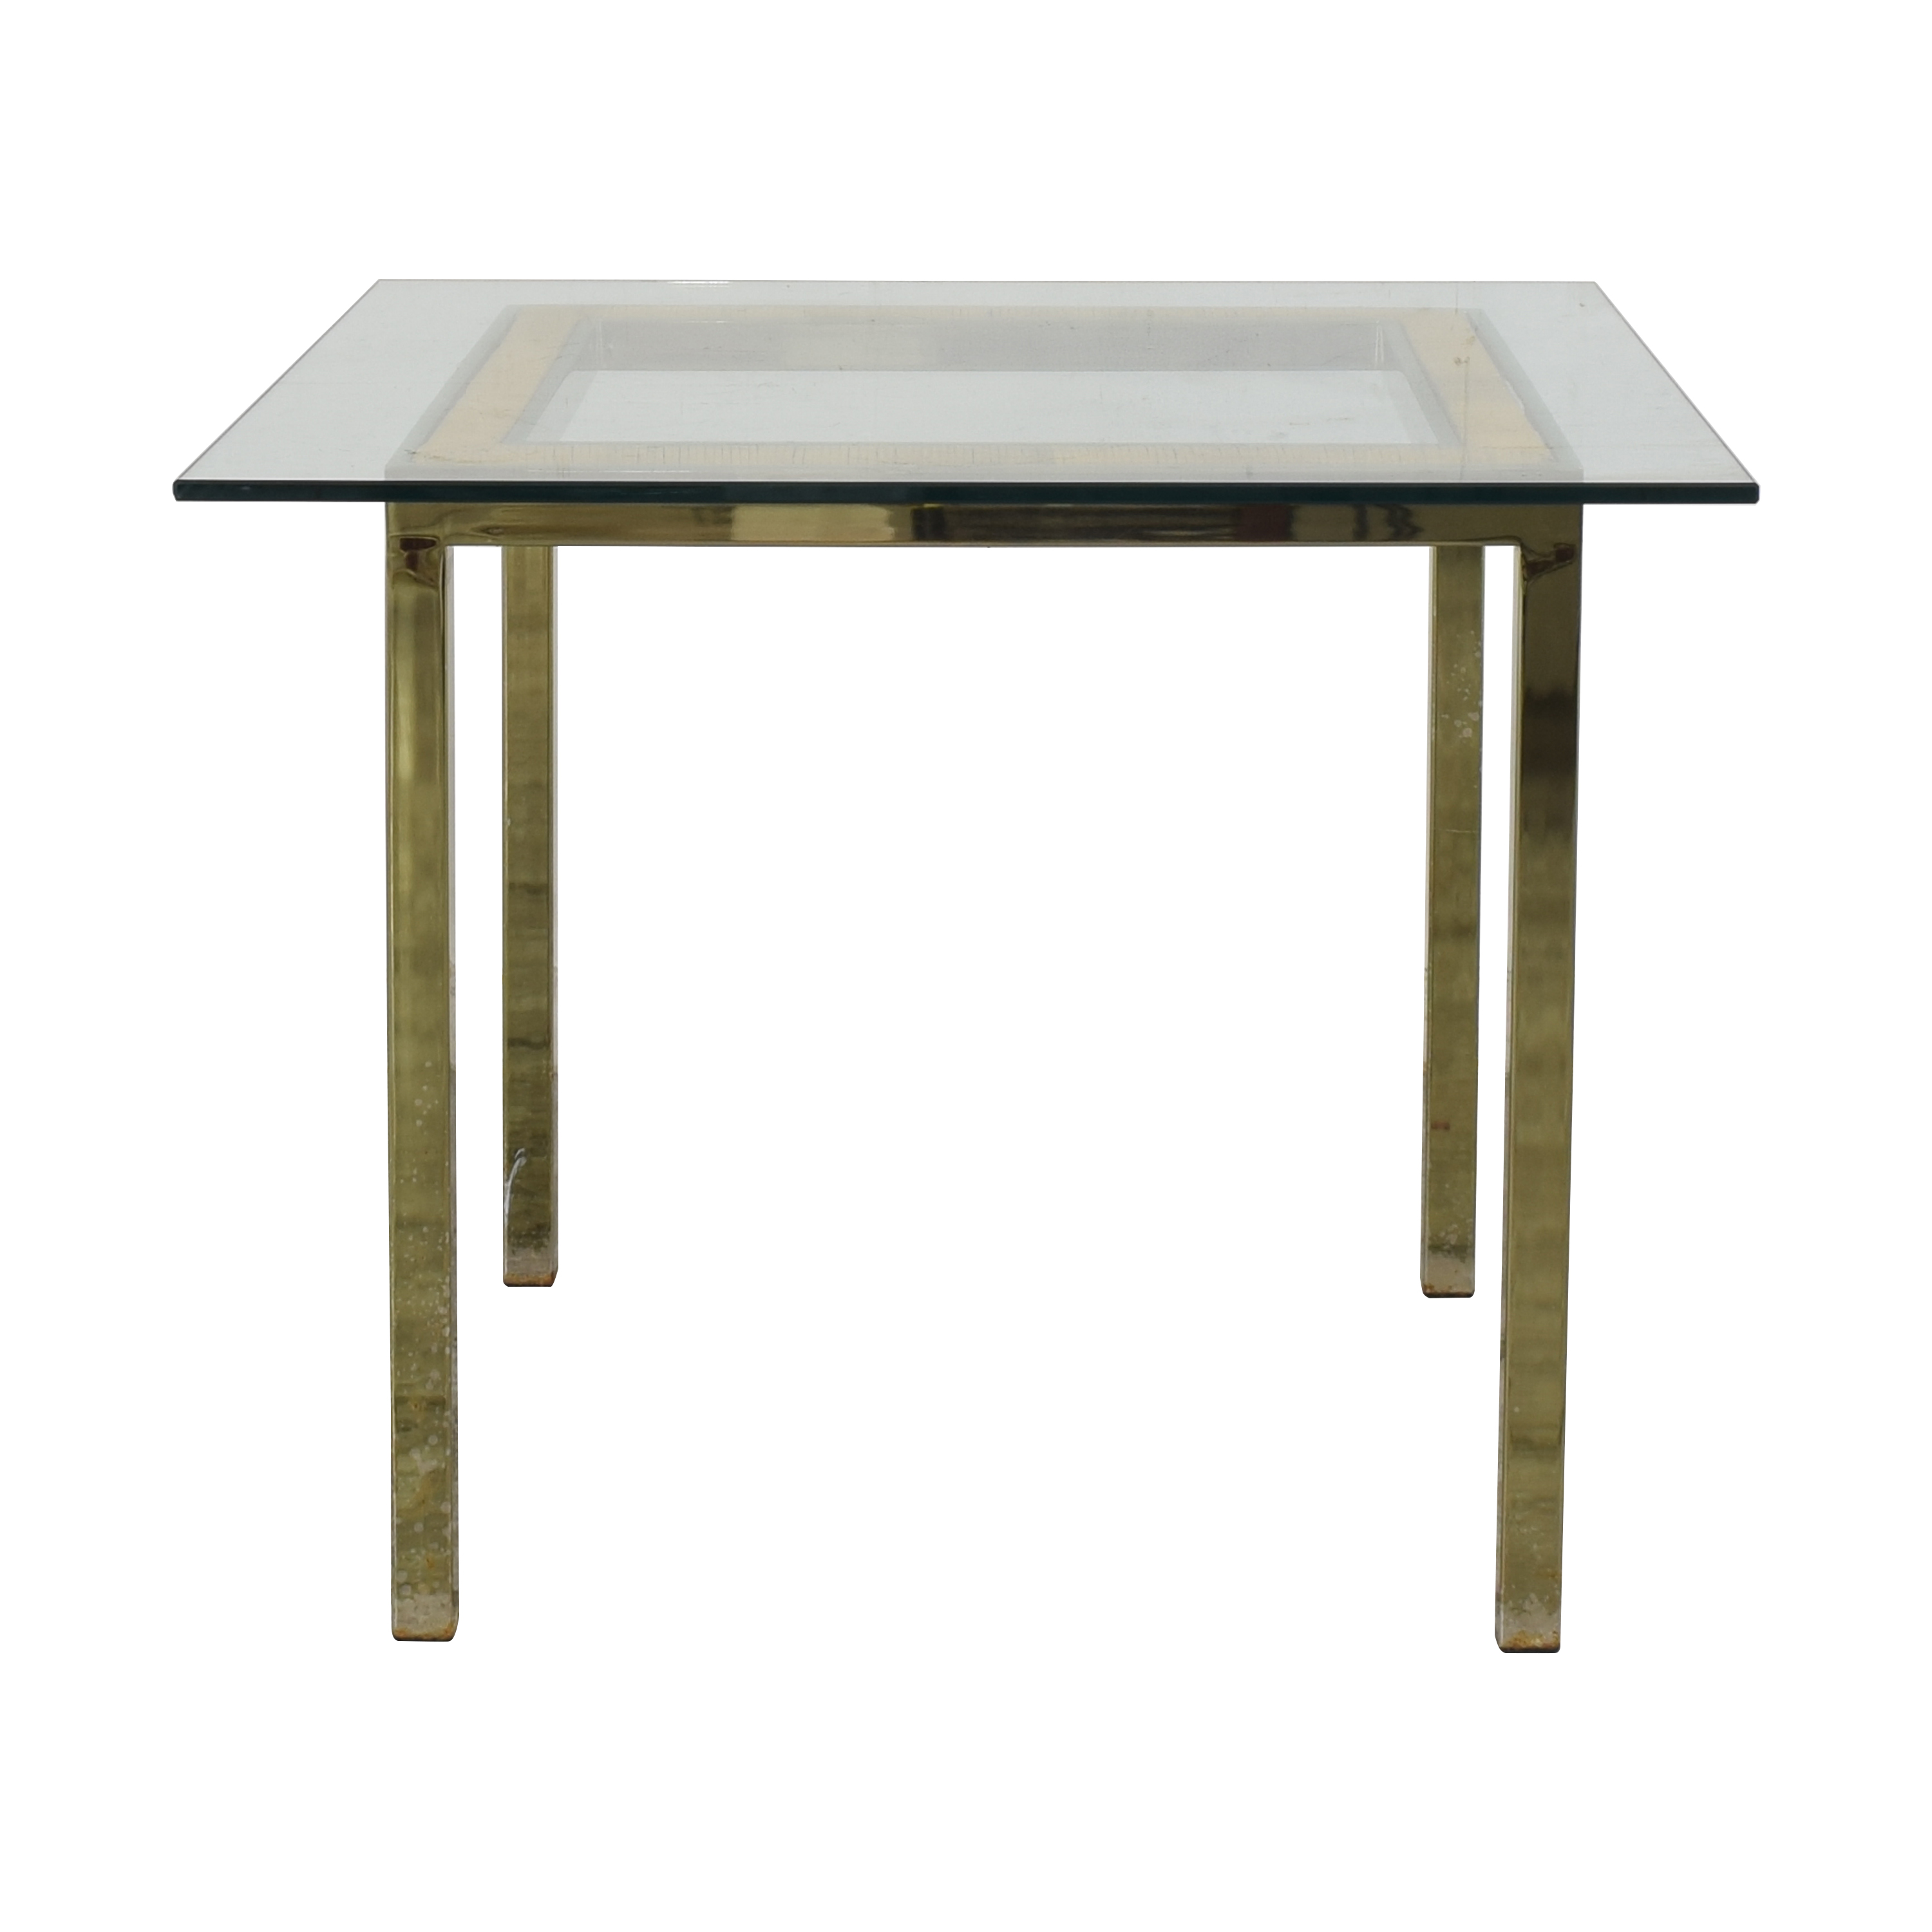 Square Mid Century Modern Dining Table discount